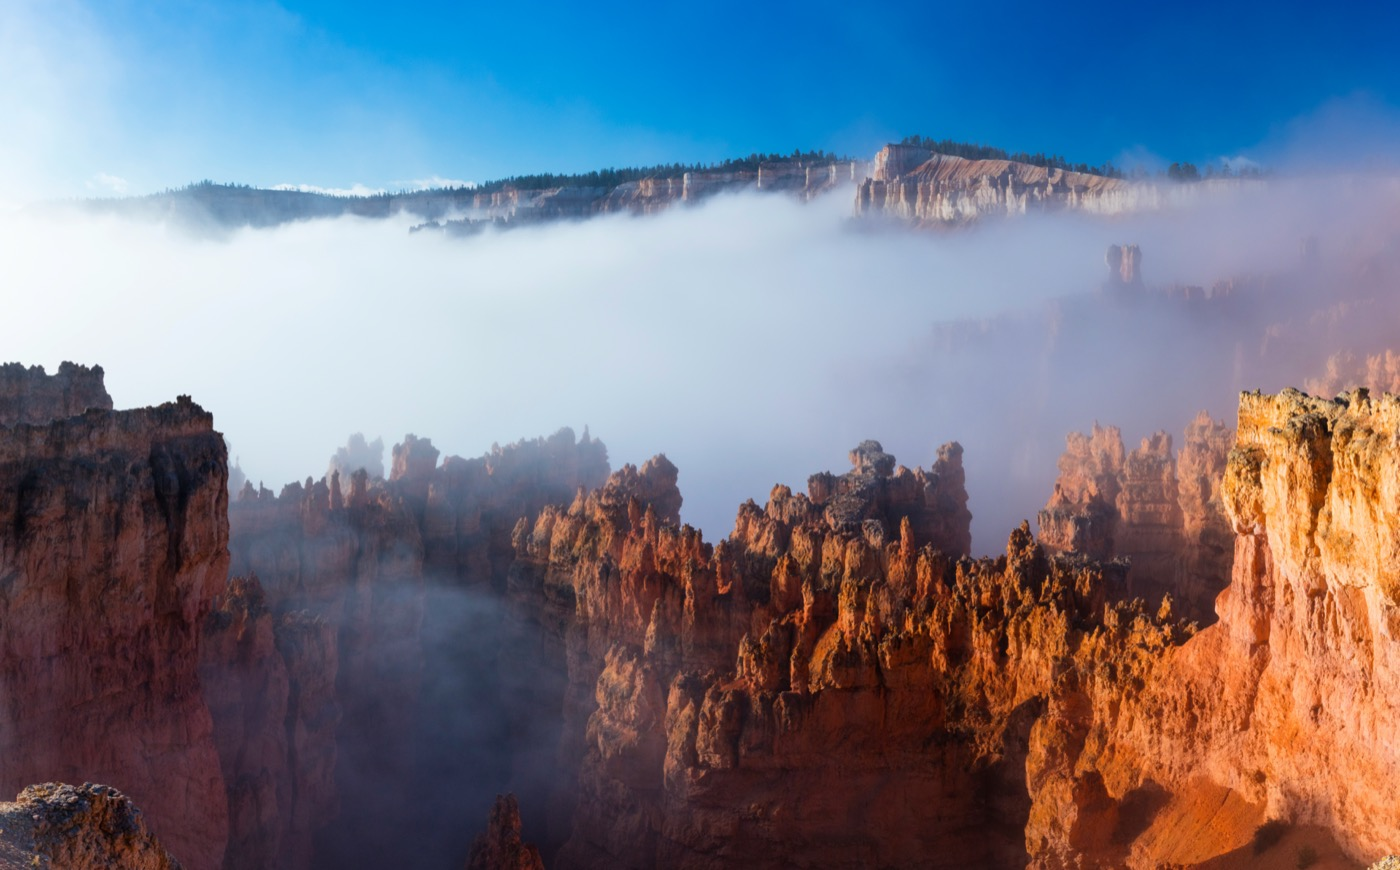 a layer of fog partially obscuring a majestic canyon